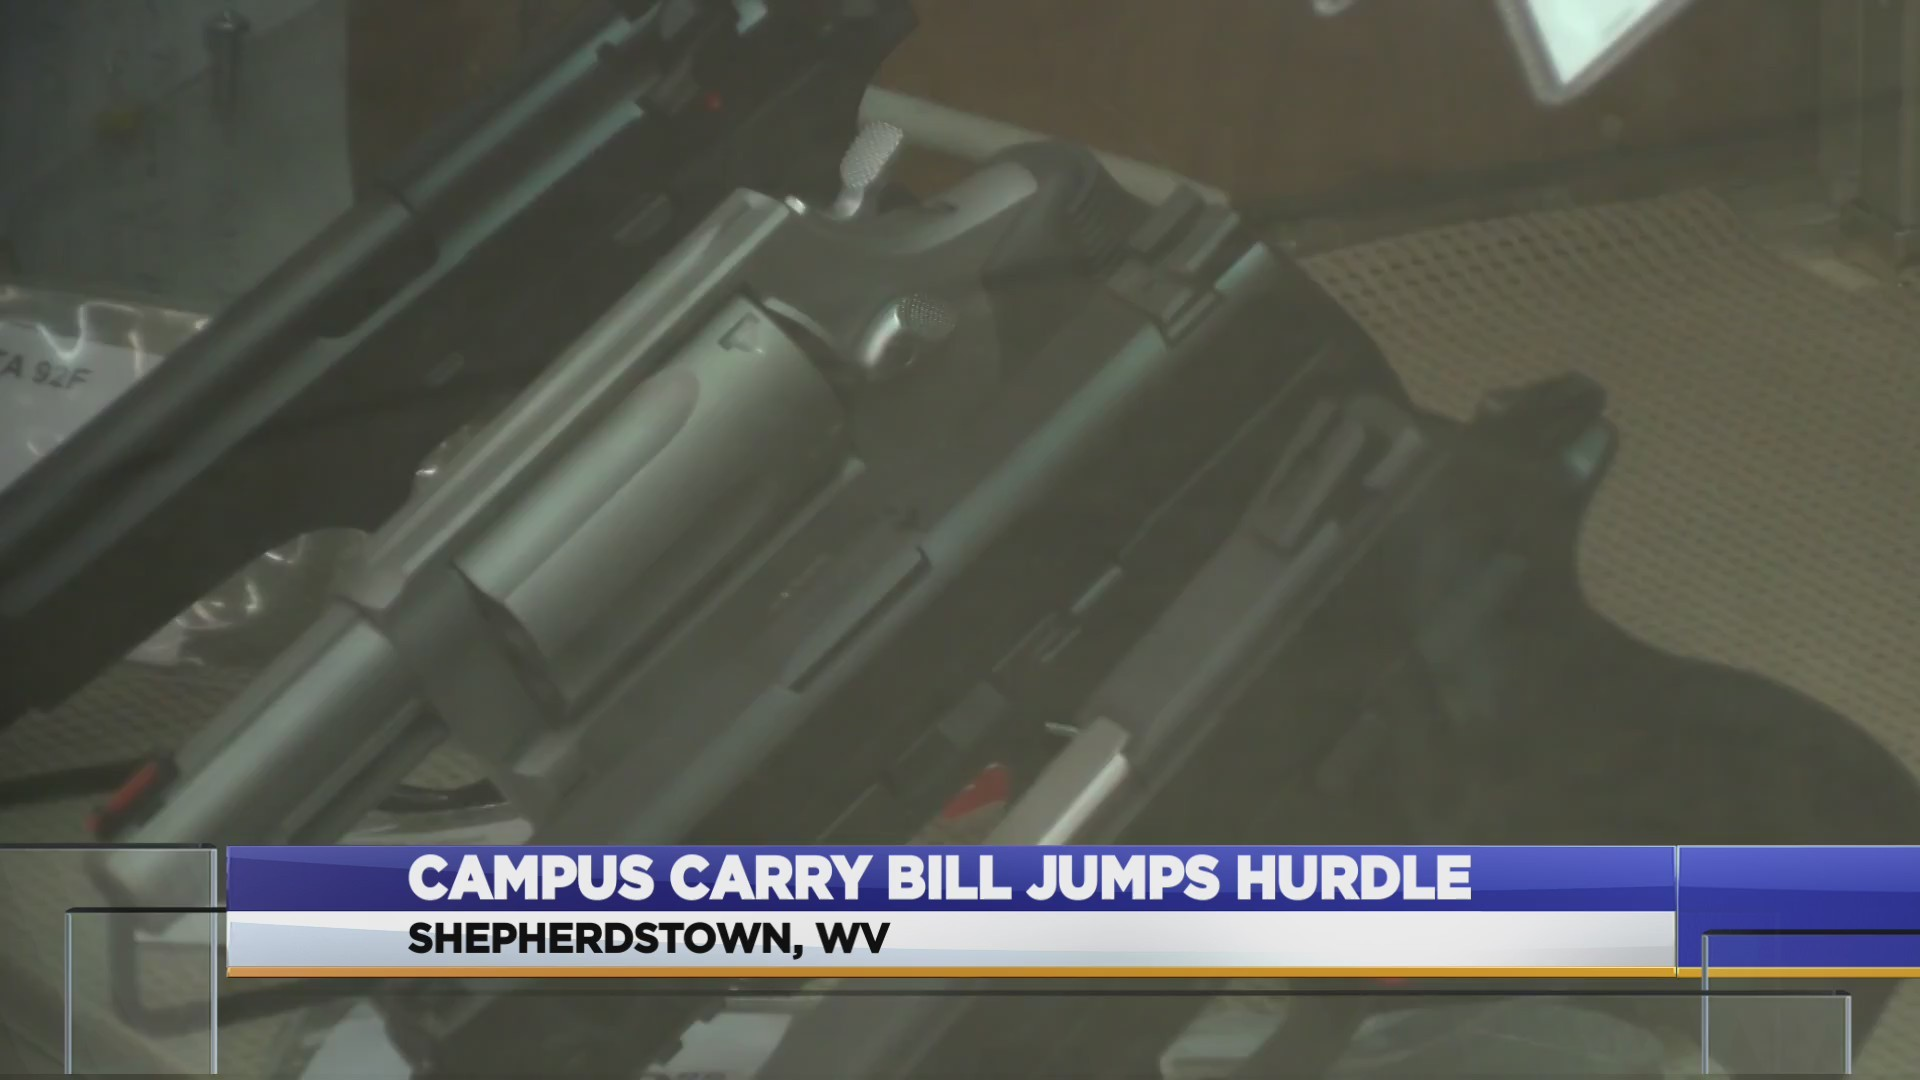 Campus_carry_bill__LIVE_5PM__0_20190228222456